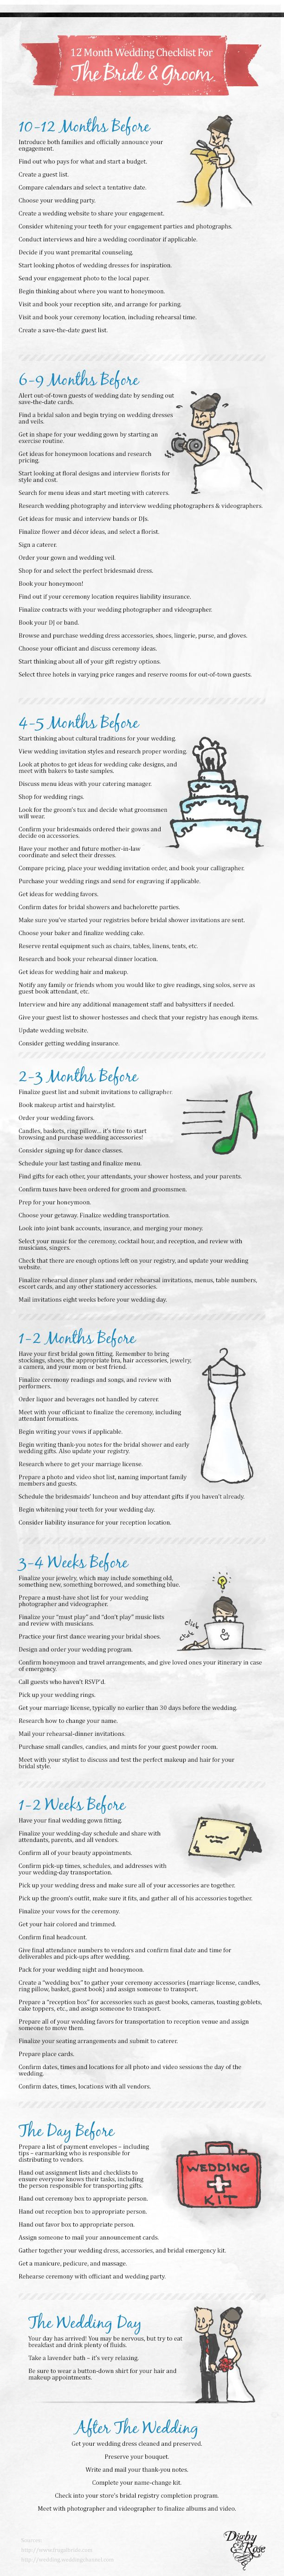 12 month wedding planning checklist...I'll thank myself for this later <3